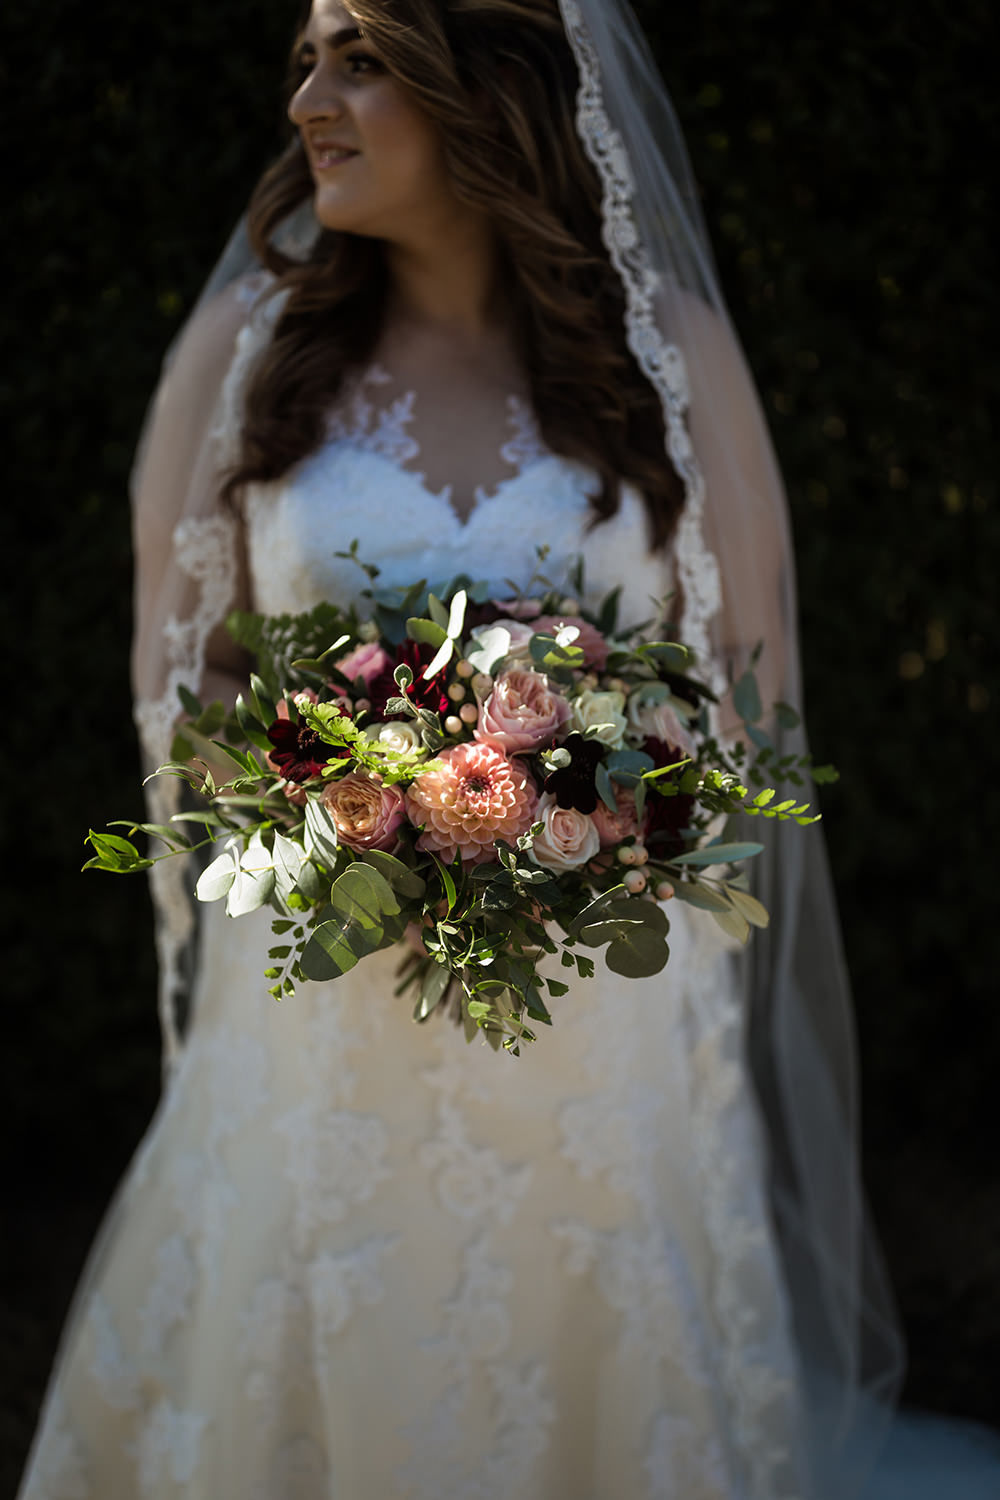 Bride Bridal Bouquet Flowers Dahlia Rose Eucalyptus Haughley Park Barn Wedding Him and Her Wedding Photography